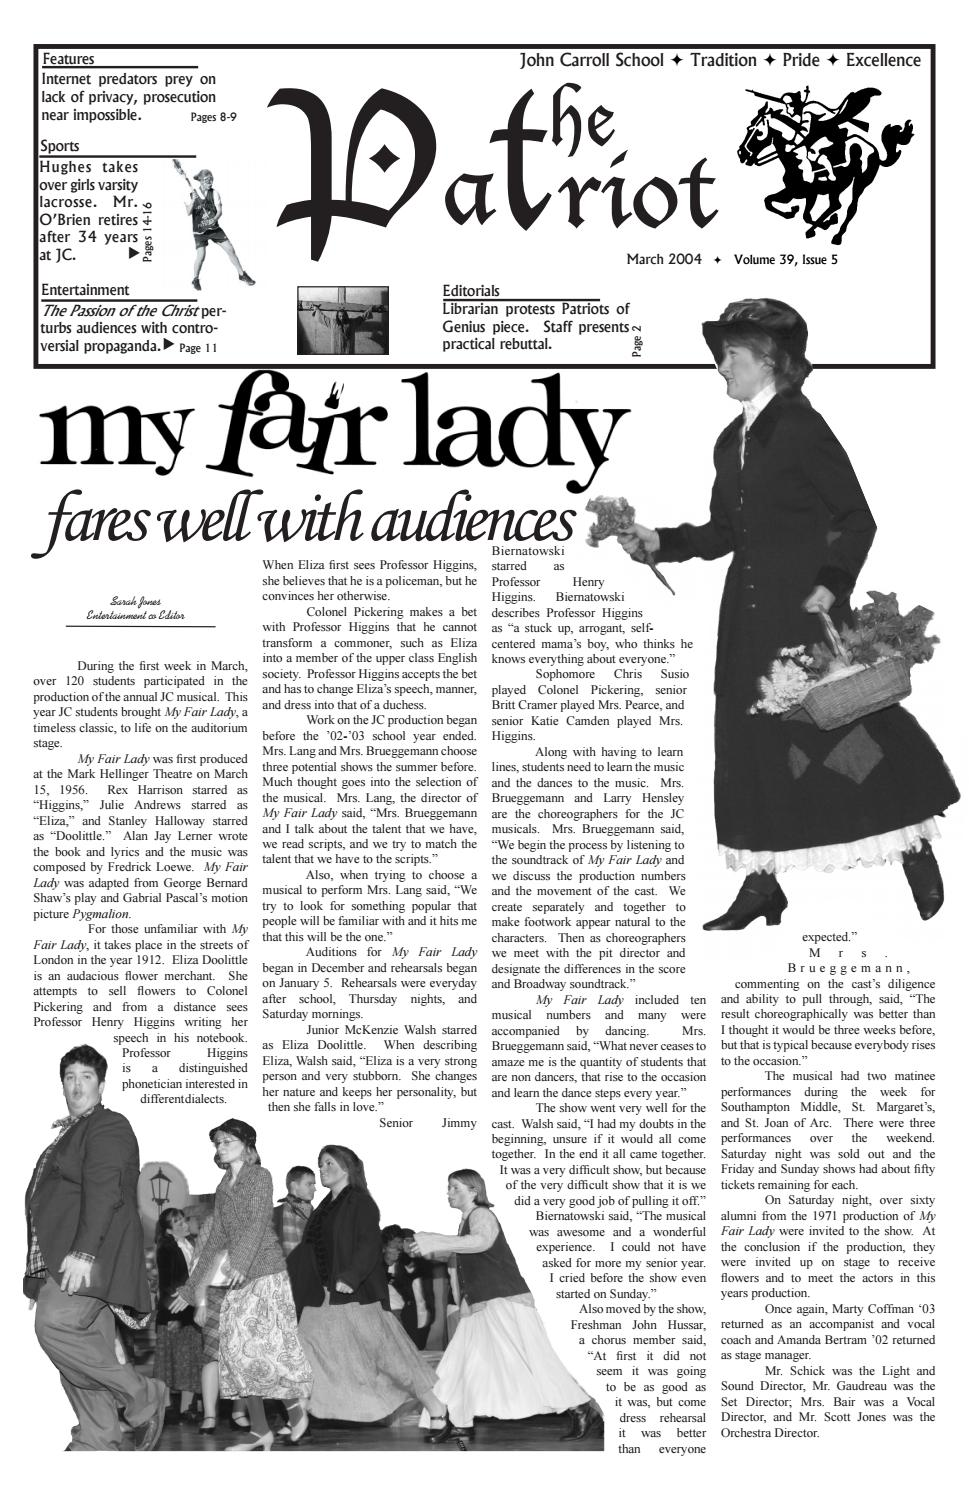 The Patriot March 2004, Issue 5, Vol 39 by The Patriot - issuu